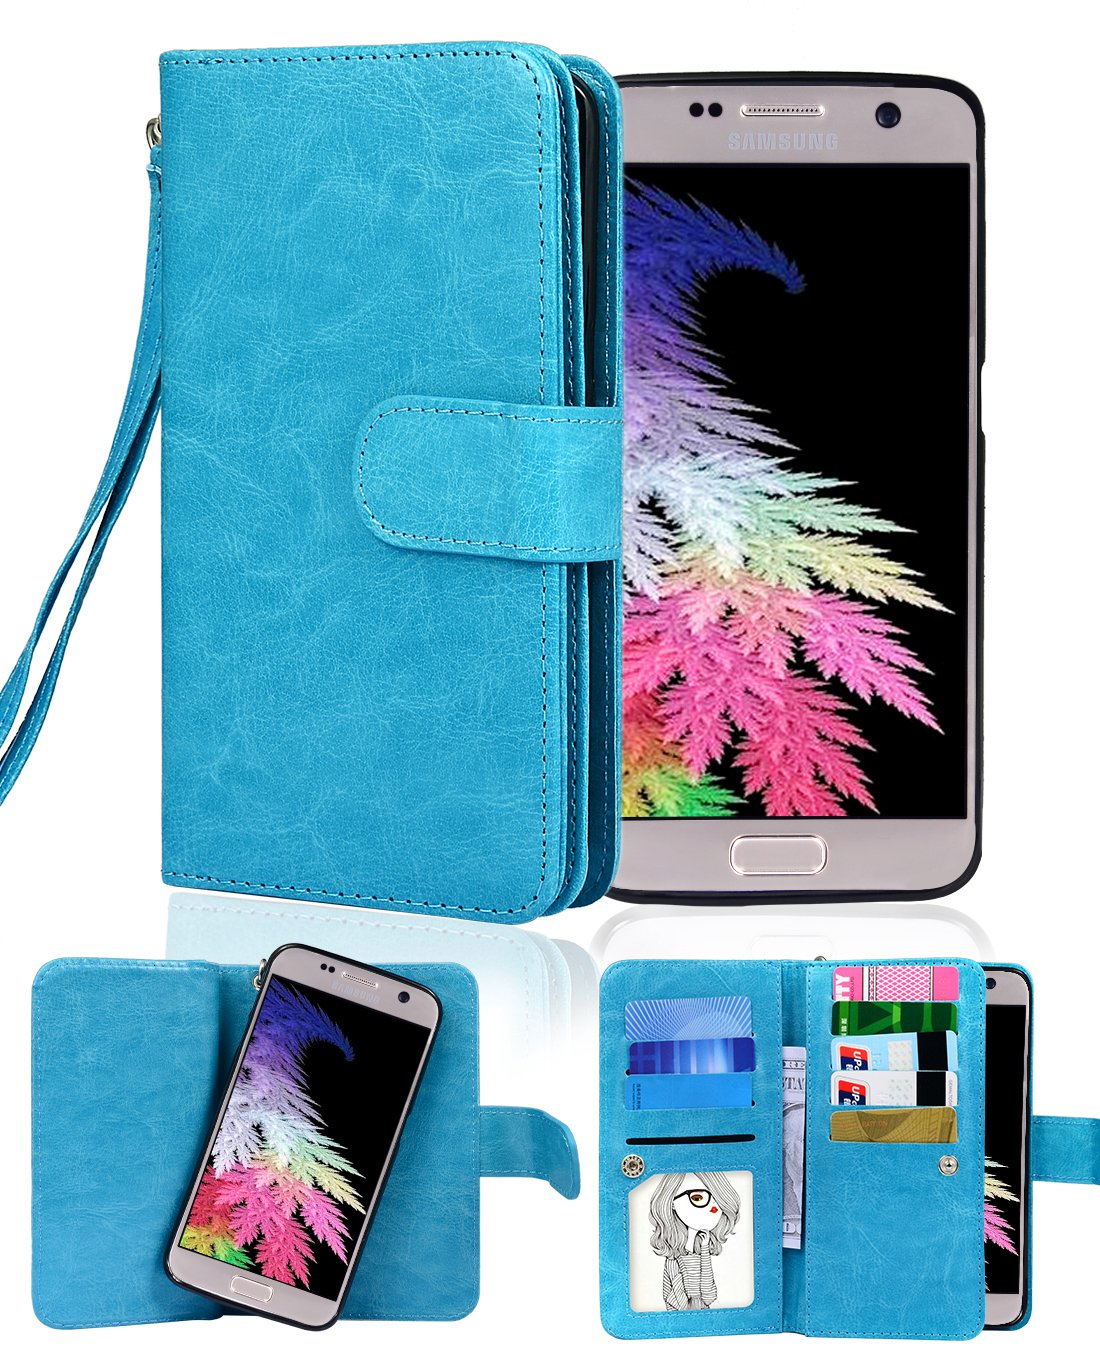 Galaxy S7 Wallet Case, Crosspace Samsung S7 Flip Wallet Cases Premium PU Leather 2-in-1 Protective Magnetic Shell with Credit Card Holder/Slots and Wrist Lanyard for Samsung Galaxy S7-Blue